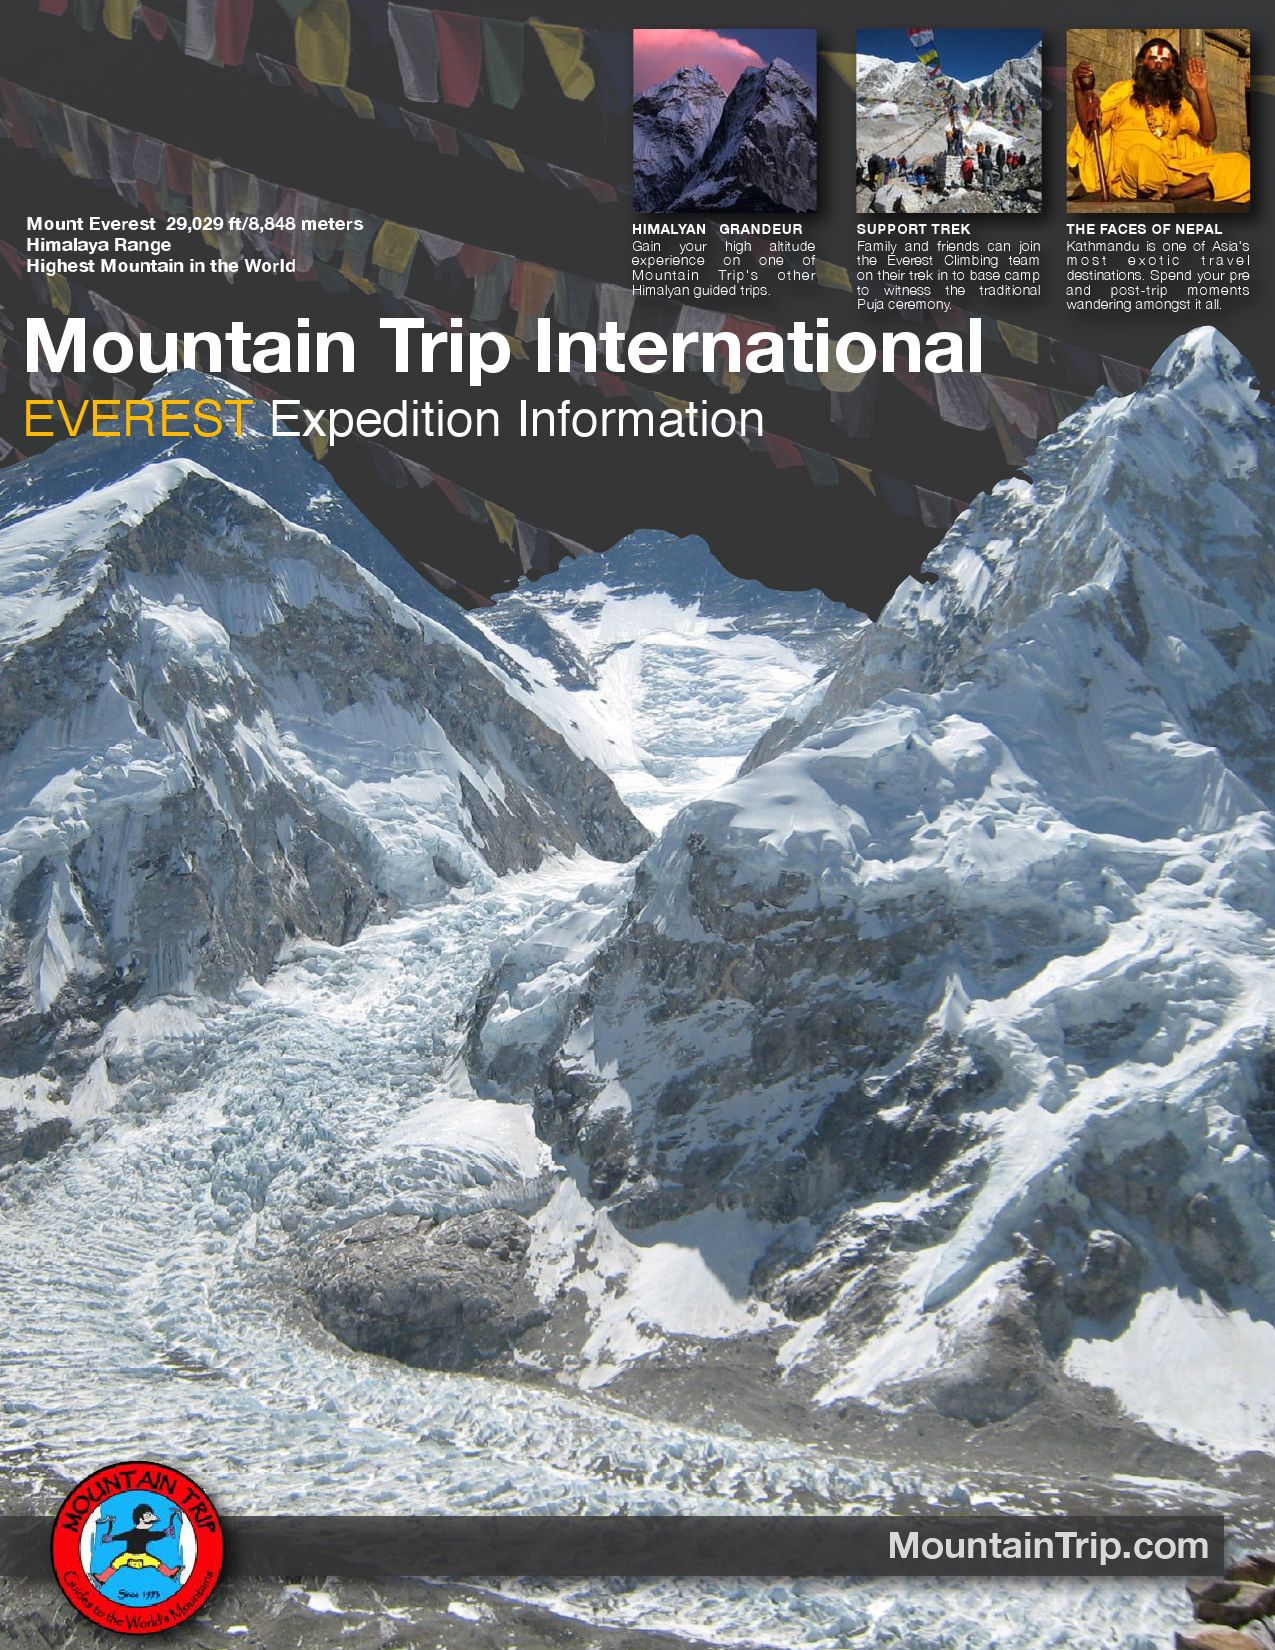 Mountain Trips 2010 Everest Expedition By Drew Ludwig Issuu Bandana Impor 29